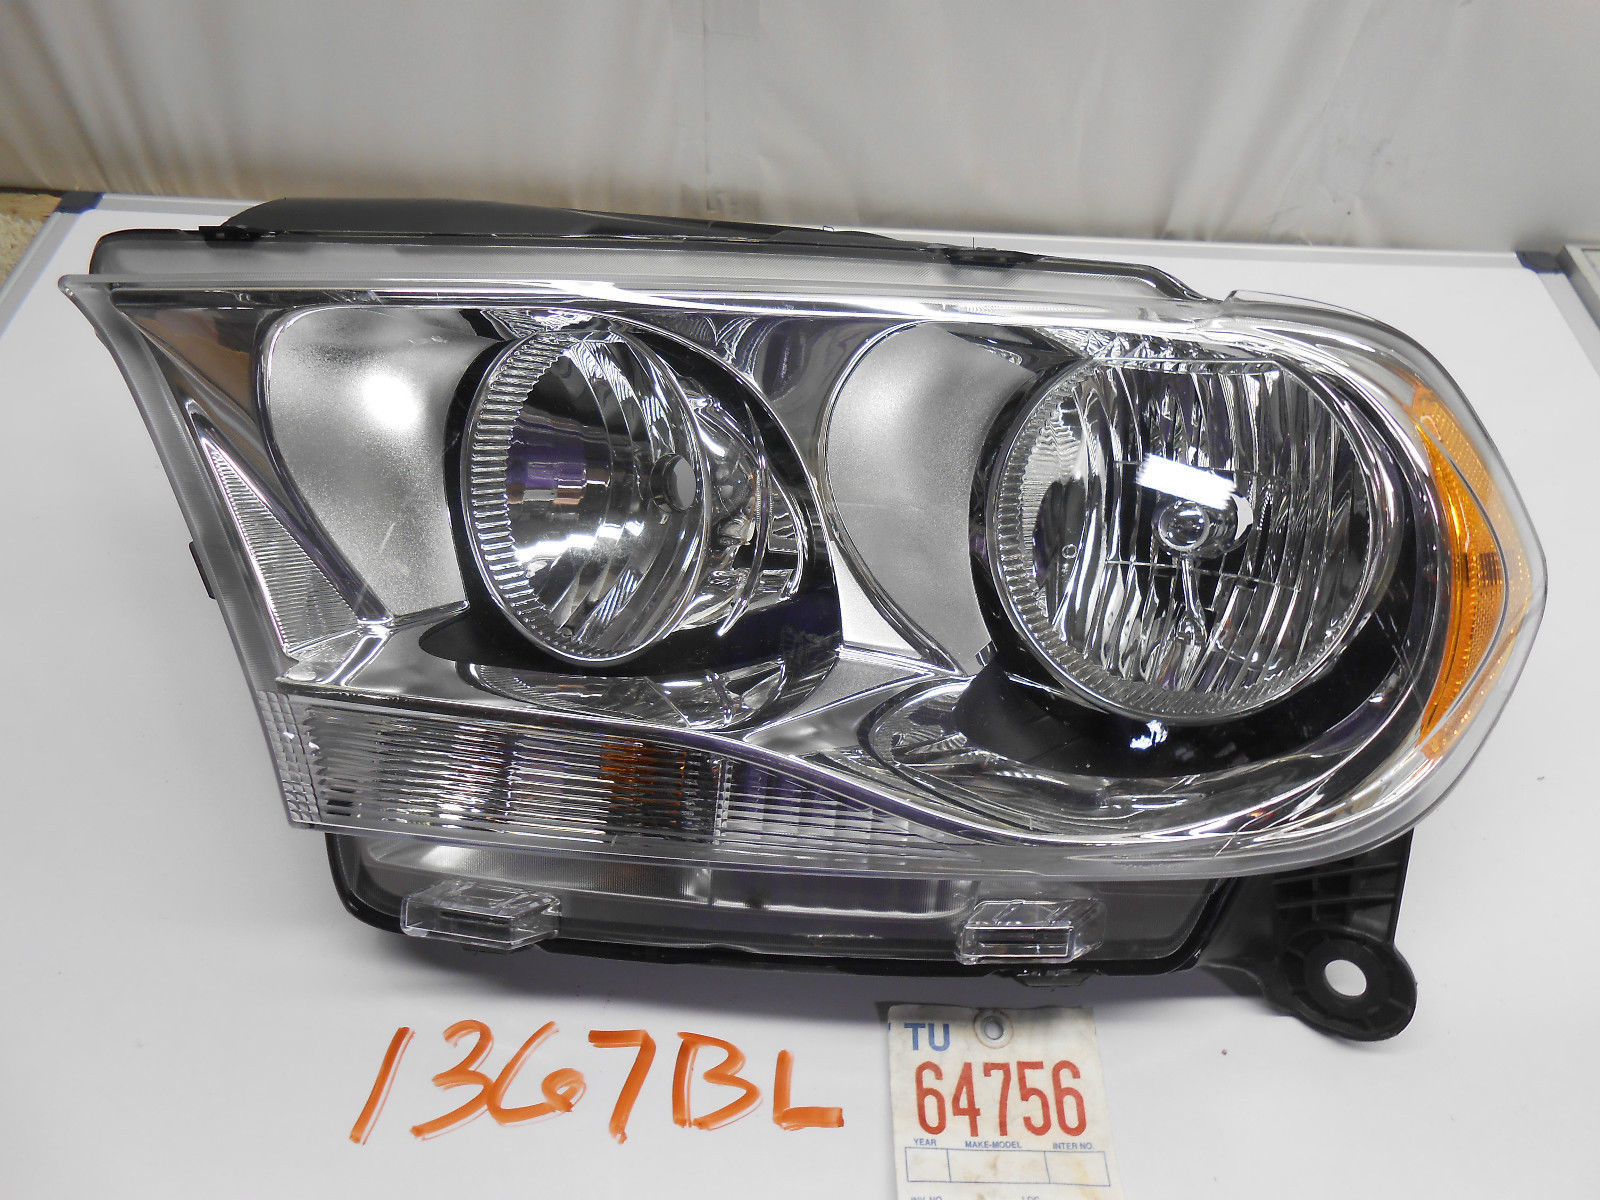 oem headlight headlamp head light lamp dodge durango 11 12. Black Bedroom Furniture Sets. Home Design Ideas